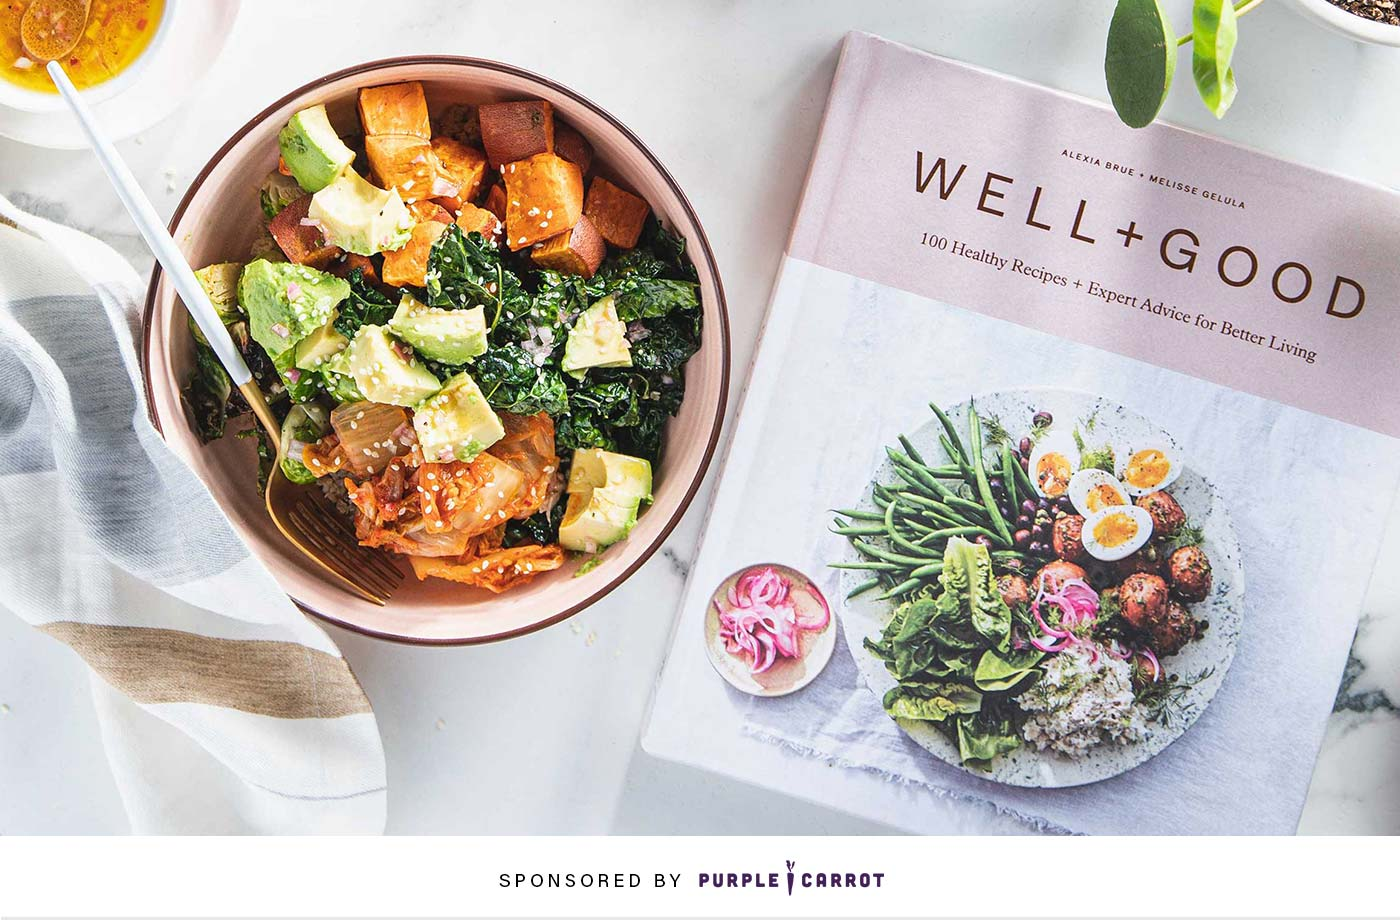 Thumbnail for PSA: You can now get meals from The Well+Good Cookbook delivered to your door from Purple Carrot